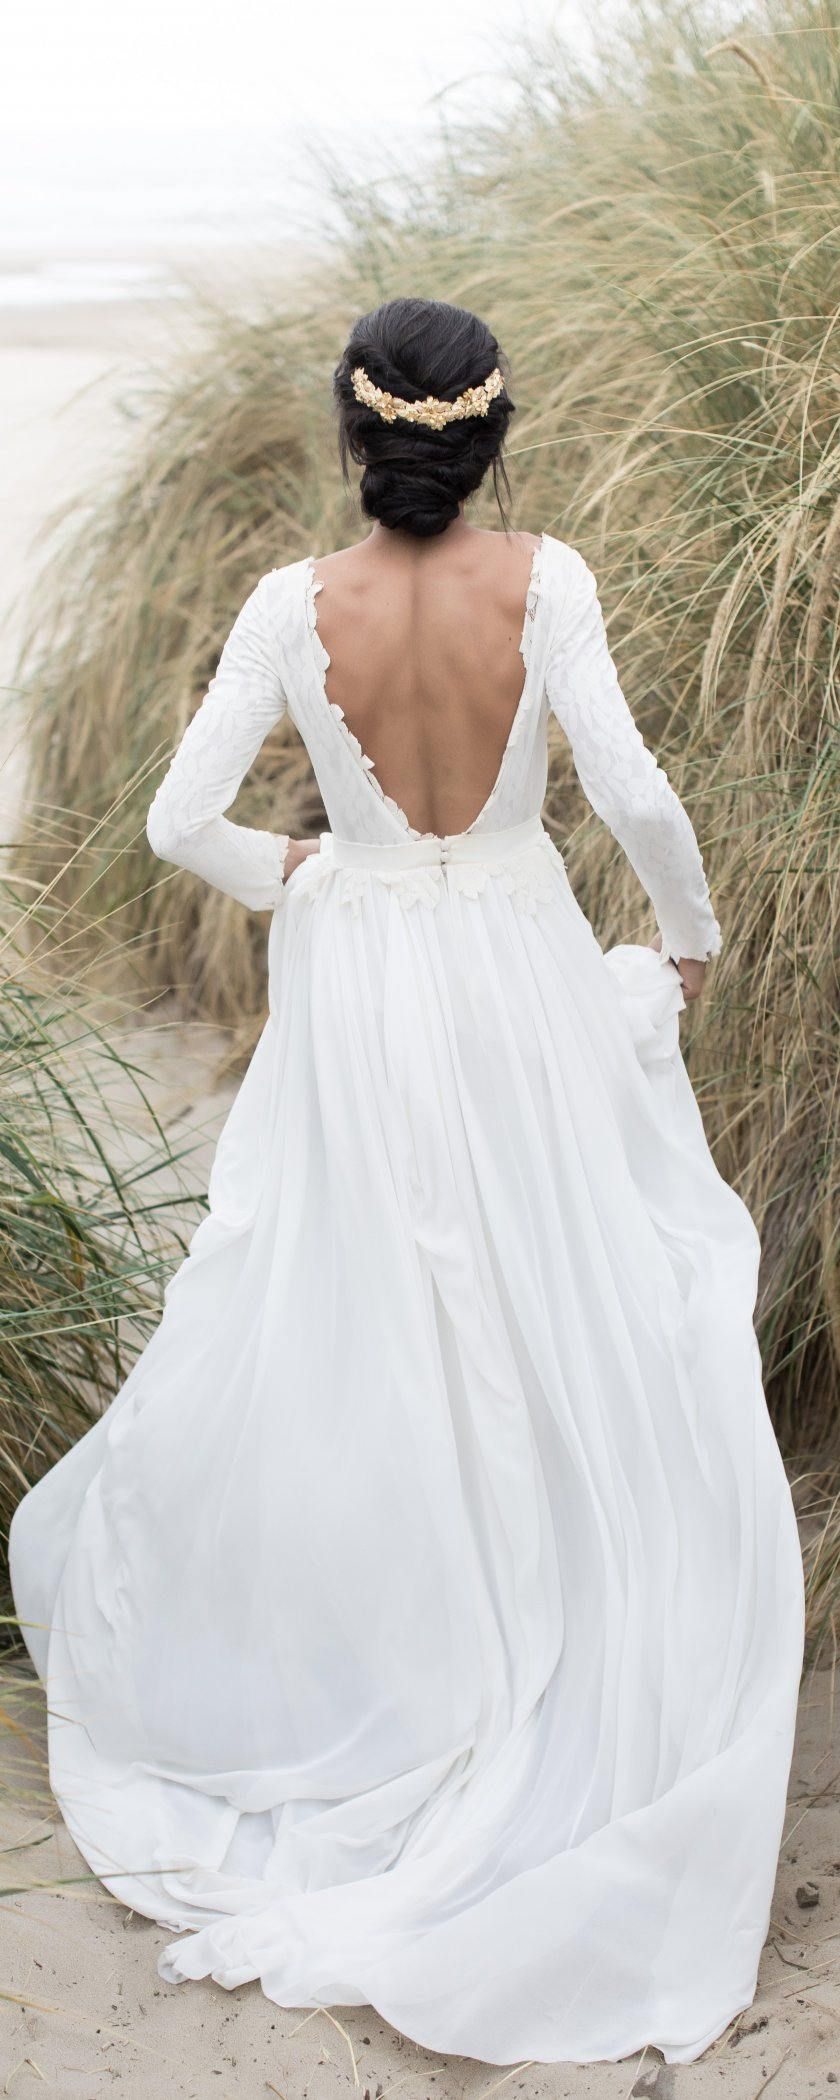 Long sleeve open back wedding dress with lace lining wedding looks